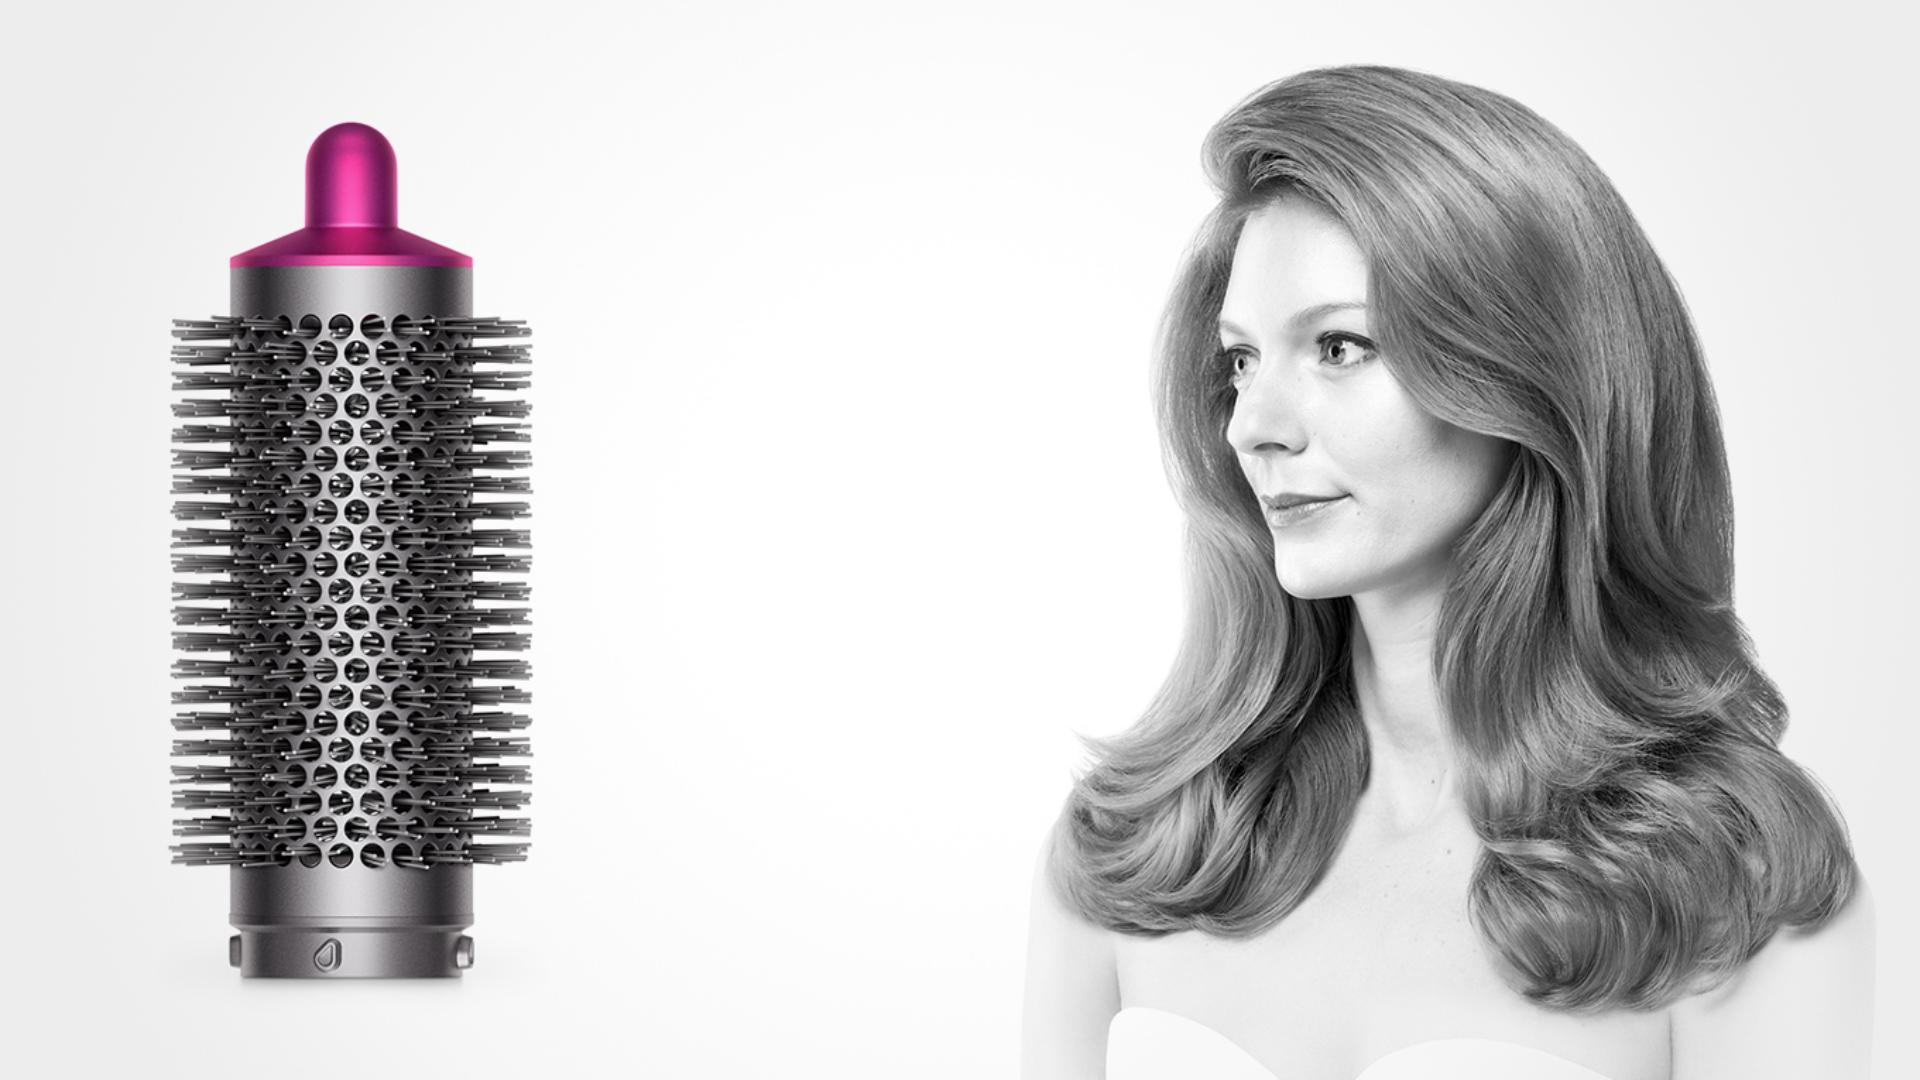 Photograph of a woman and a round volumising brush (Nickel/Fuschia).